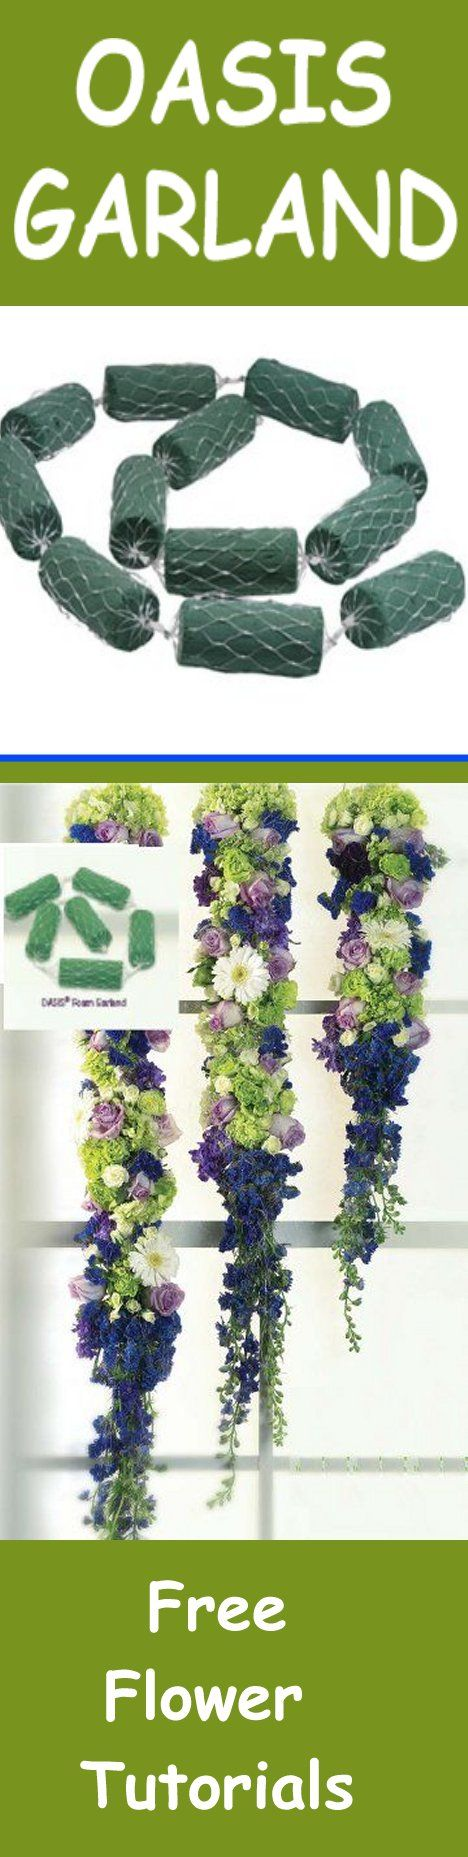 Quality Floral Supply - Buy Oasis foam products for bouquets, centerpieces, church wedding decor and more.  Free fresh flower tutorials.